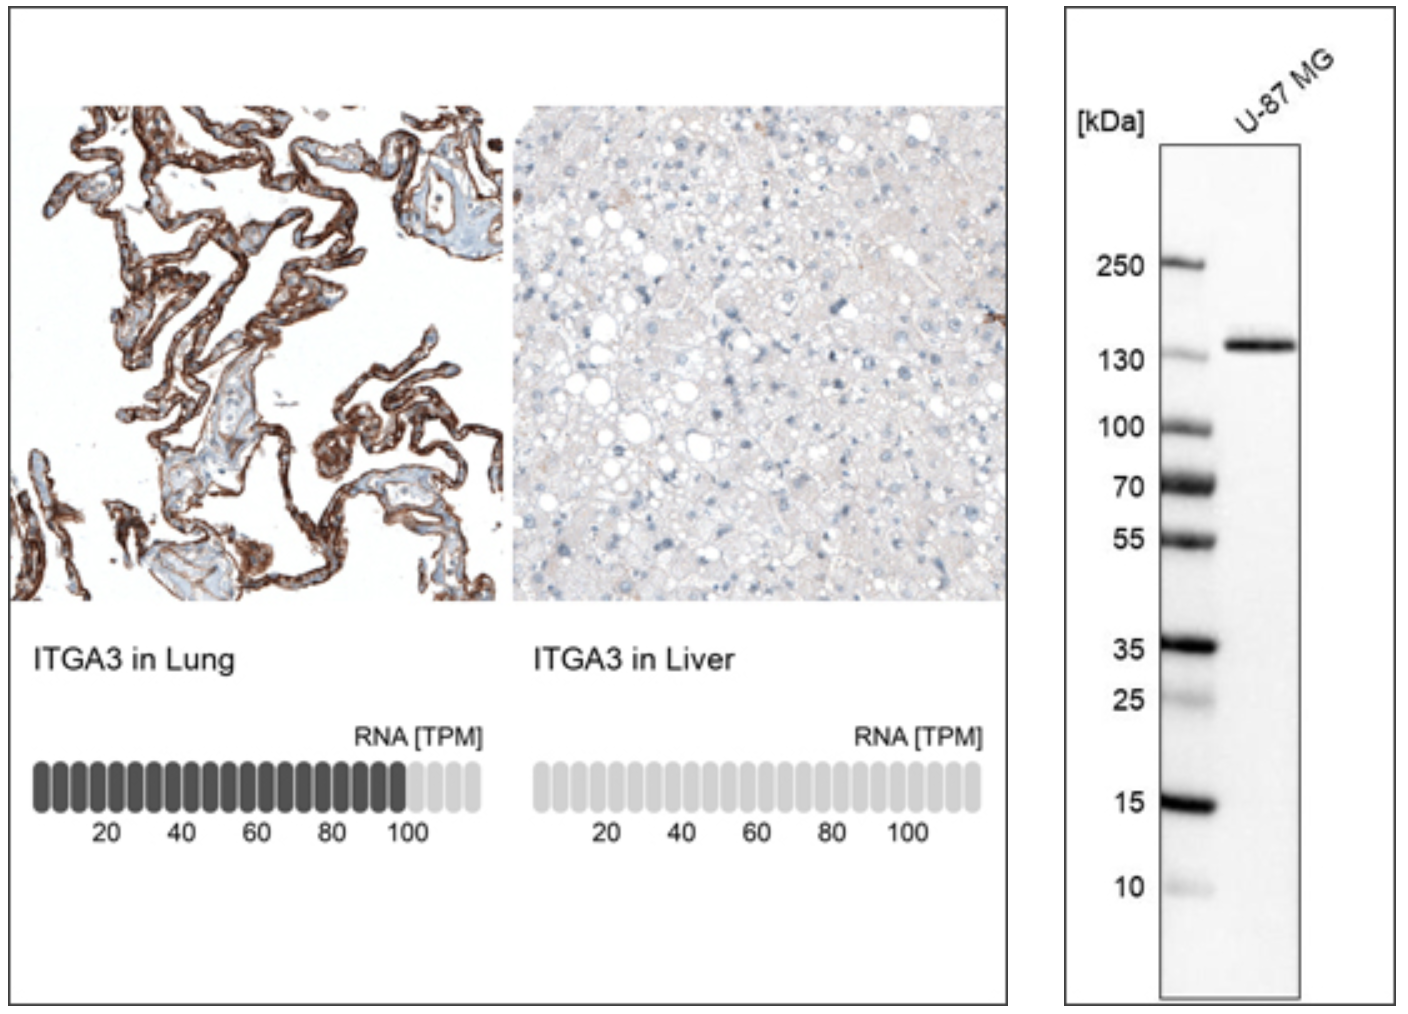 IHC staining using monoclonal antibody Anti-ITGA3 (AMAb91446) showing strong immunoreactivity in lung and absence of staining in liver